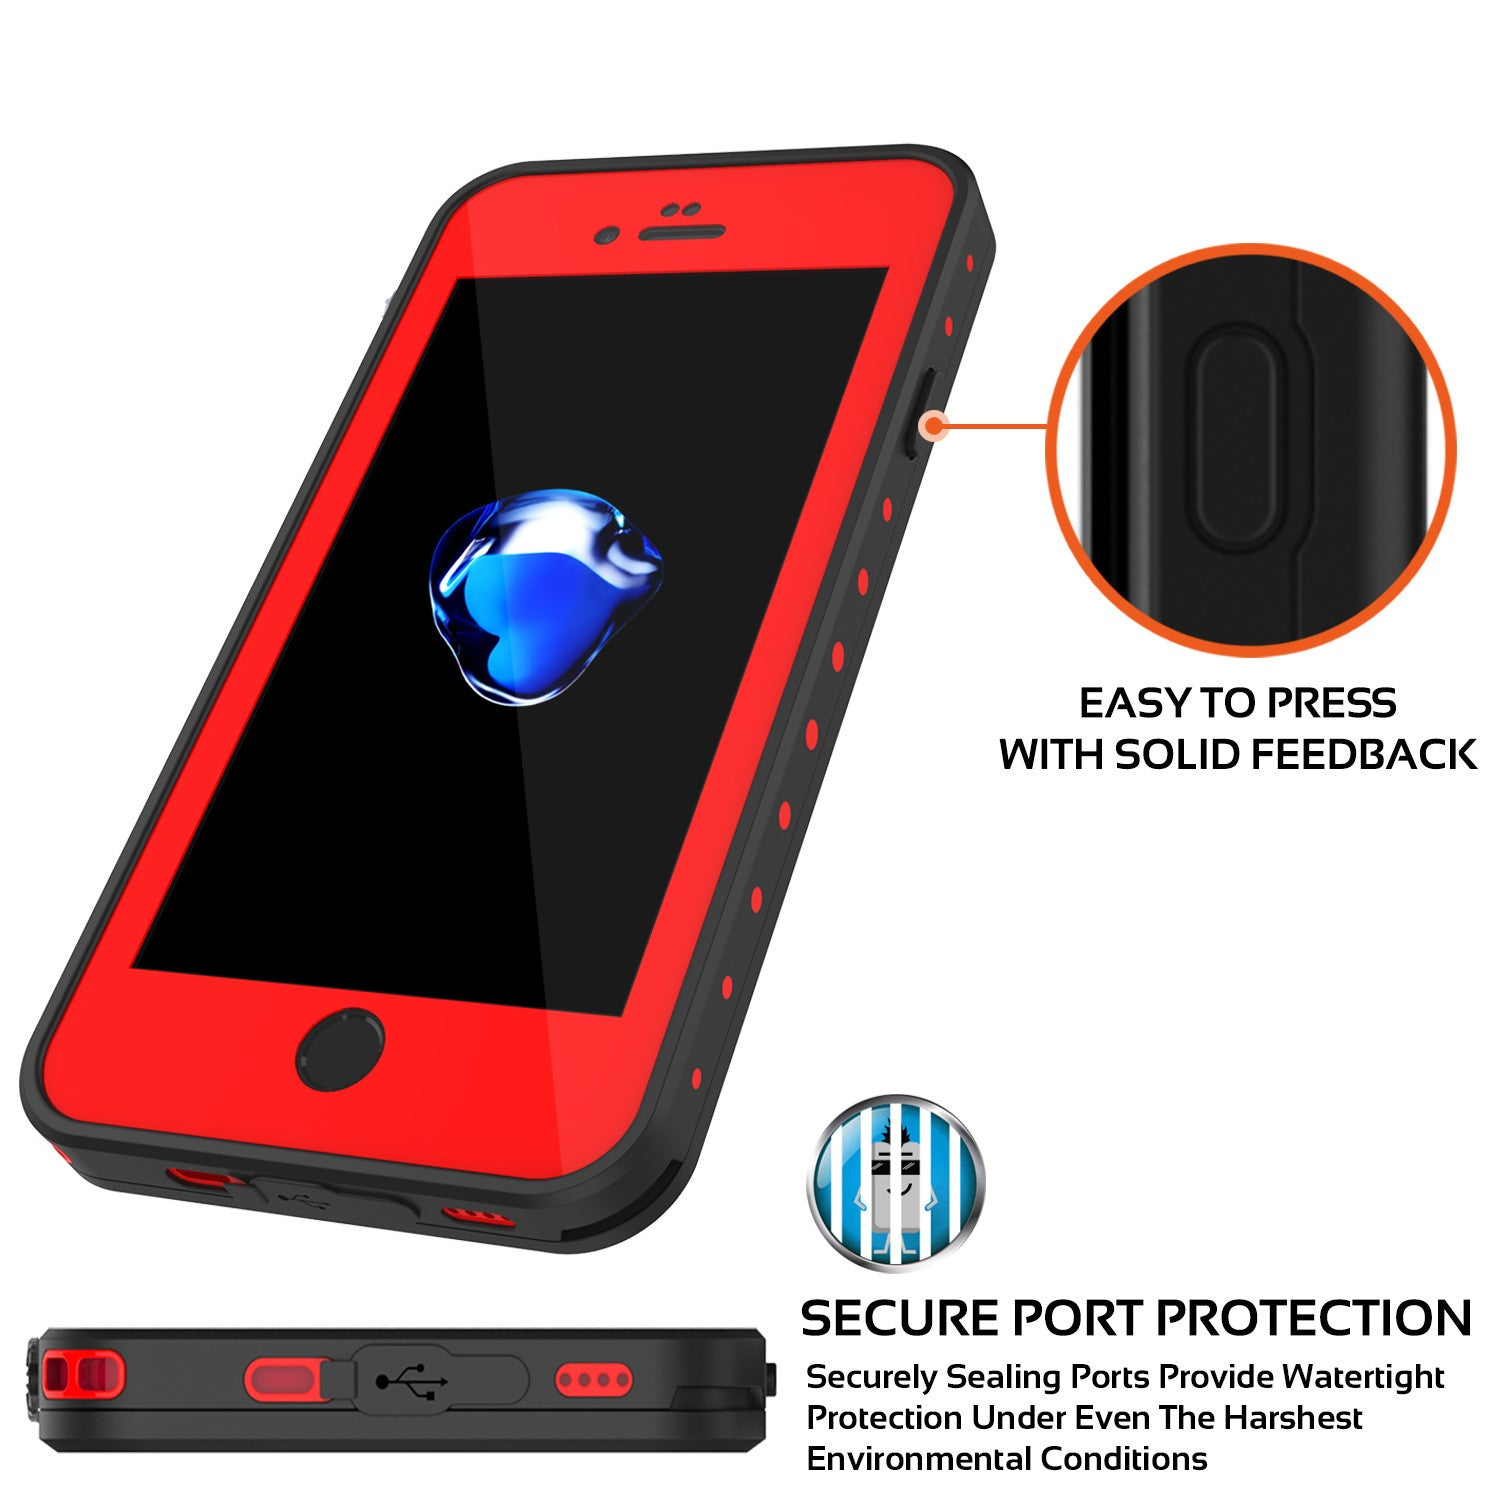 iPhone 7 Waterproof IP68 Case, Punkcase [Red] [StudStar Series] [Slim Fit] [Dirtproof] [Snowproof]